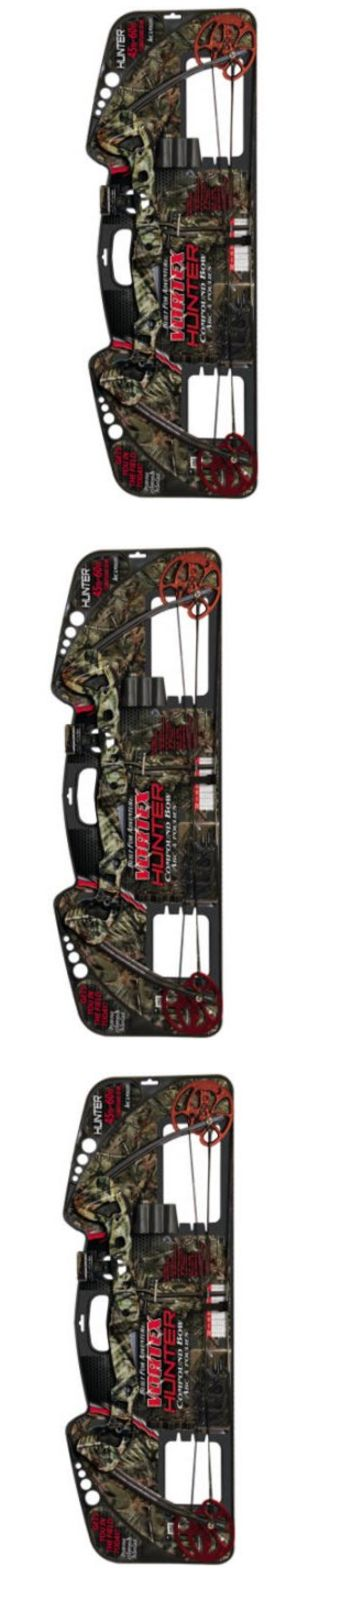 Compound 20838: The Compound Bow Hunting Deer For Men Barnett Vortex Archers Lightweight Compact -> BUY IT NOW ONLY: $91.53 on eBay!